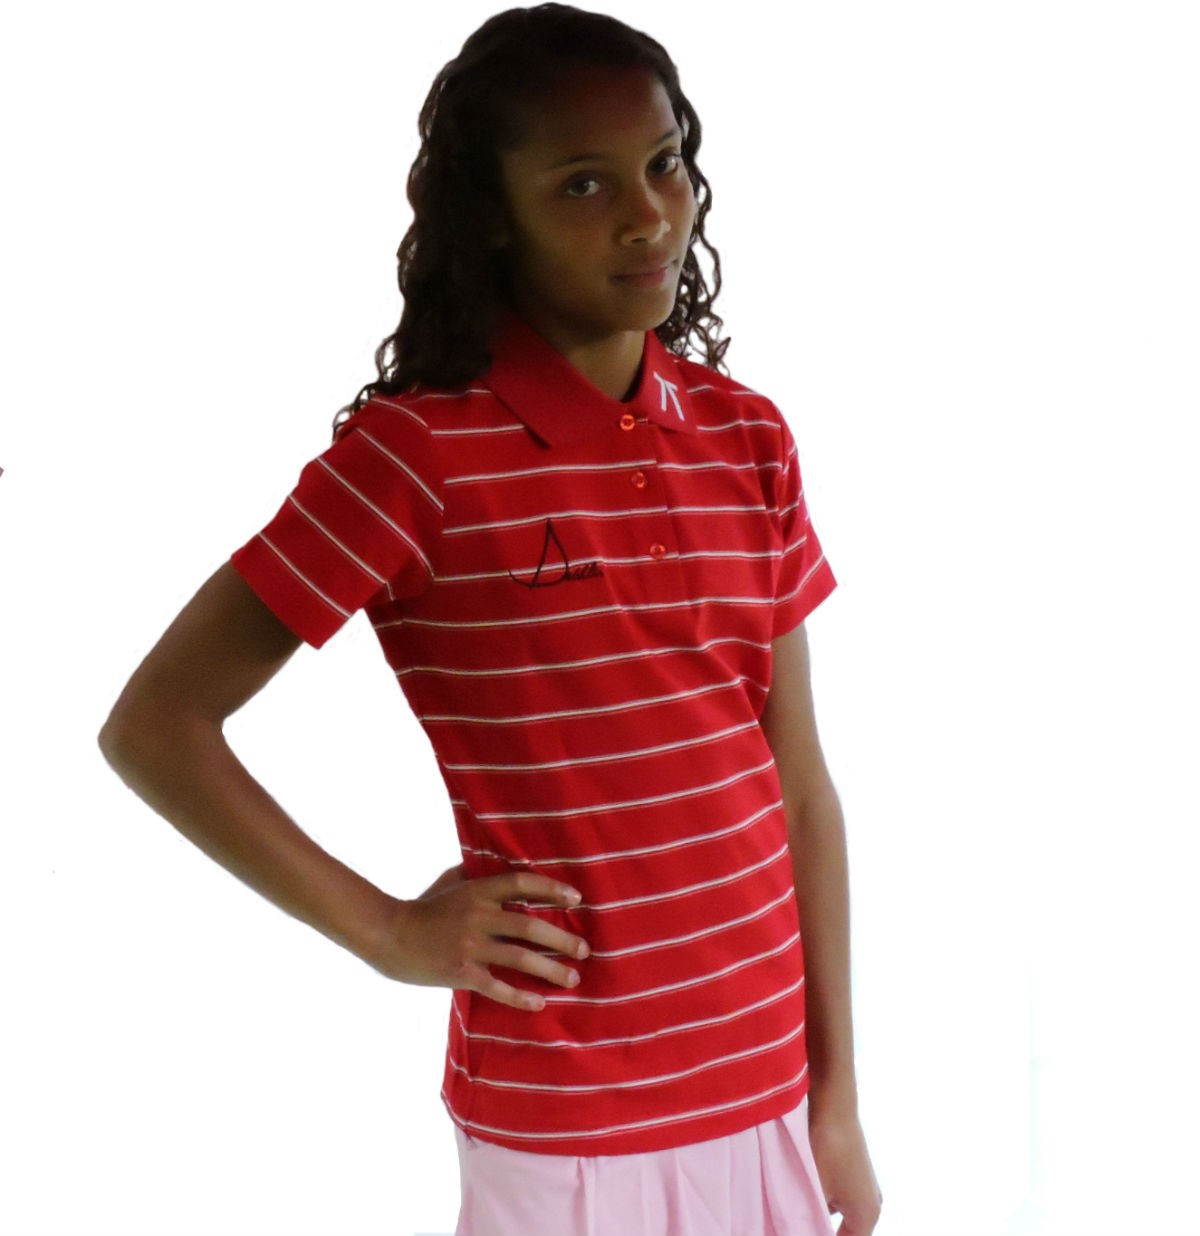 Sephlin - Jayde Red and Black Striped Polo